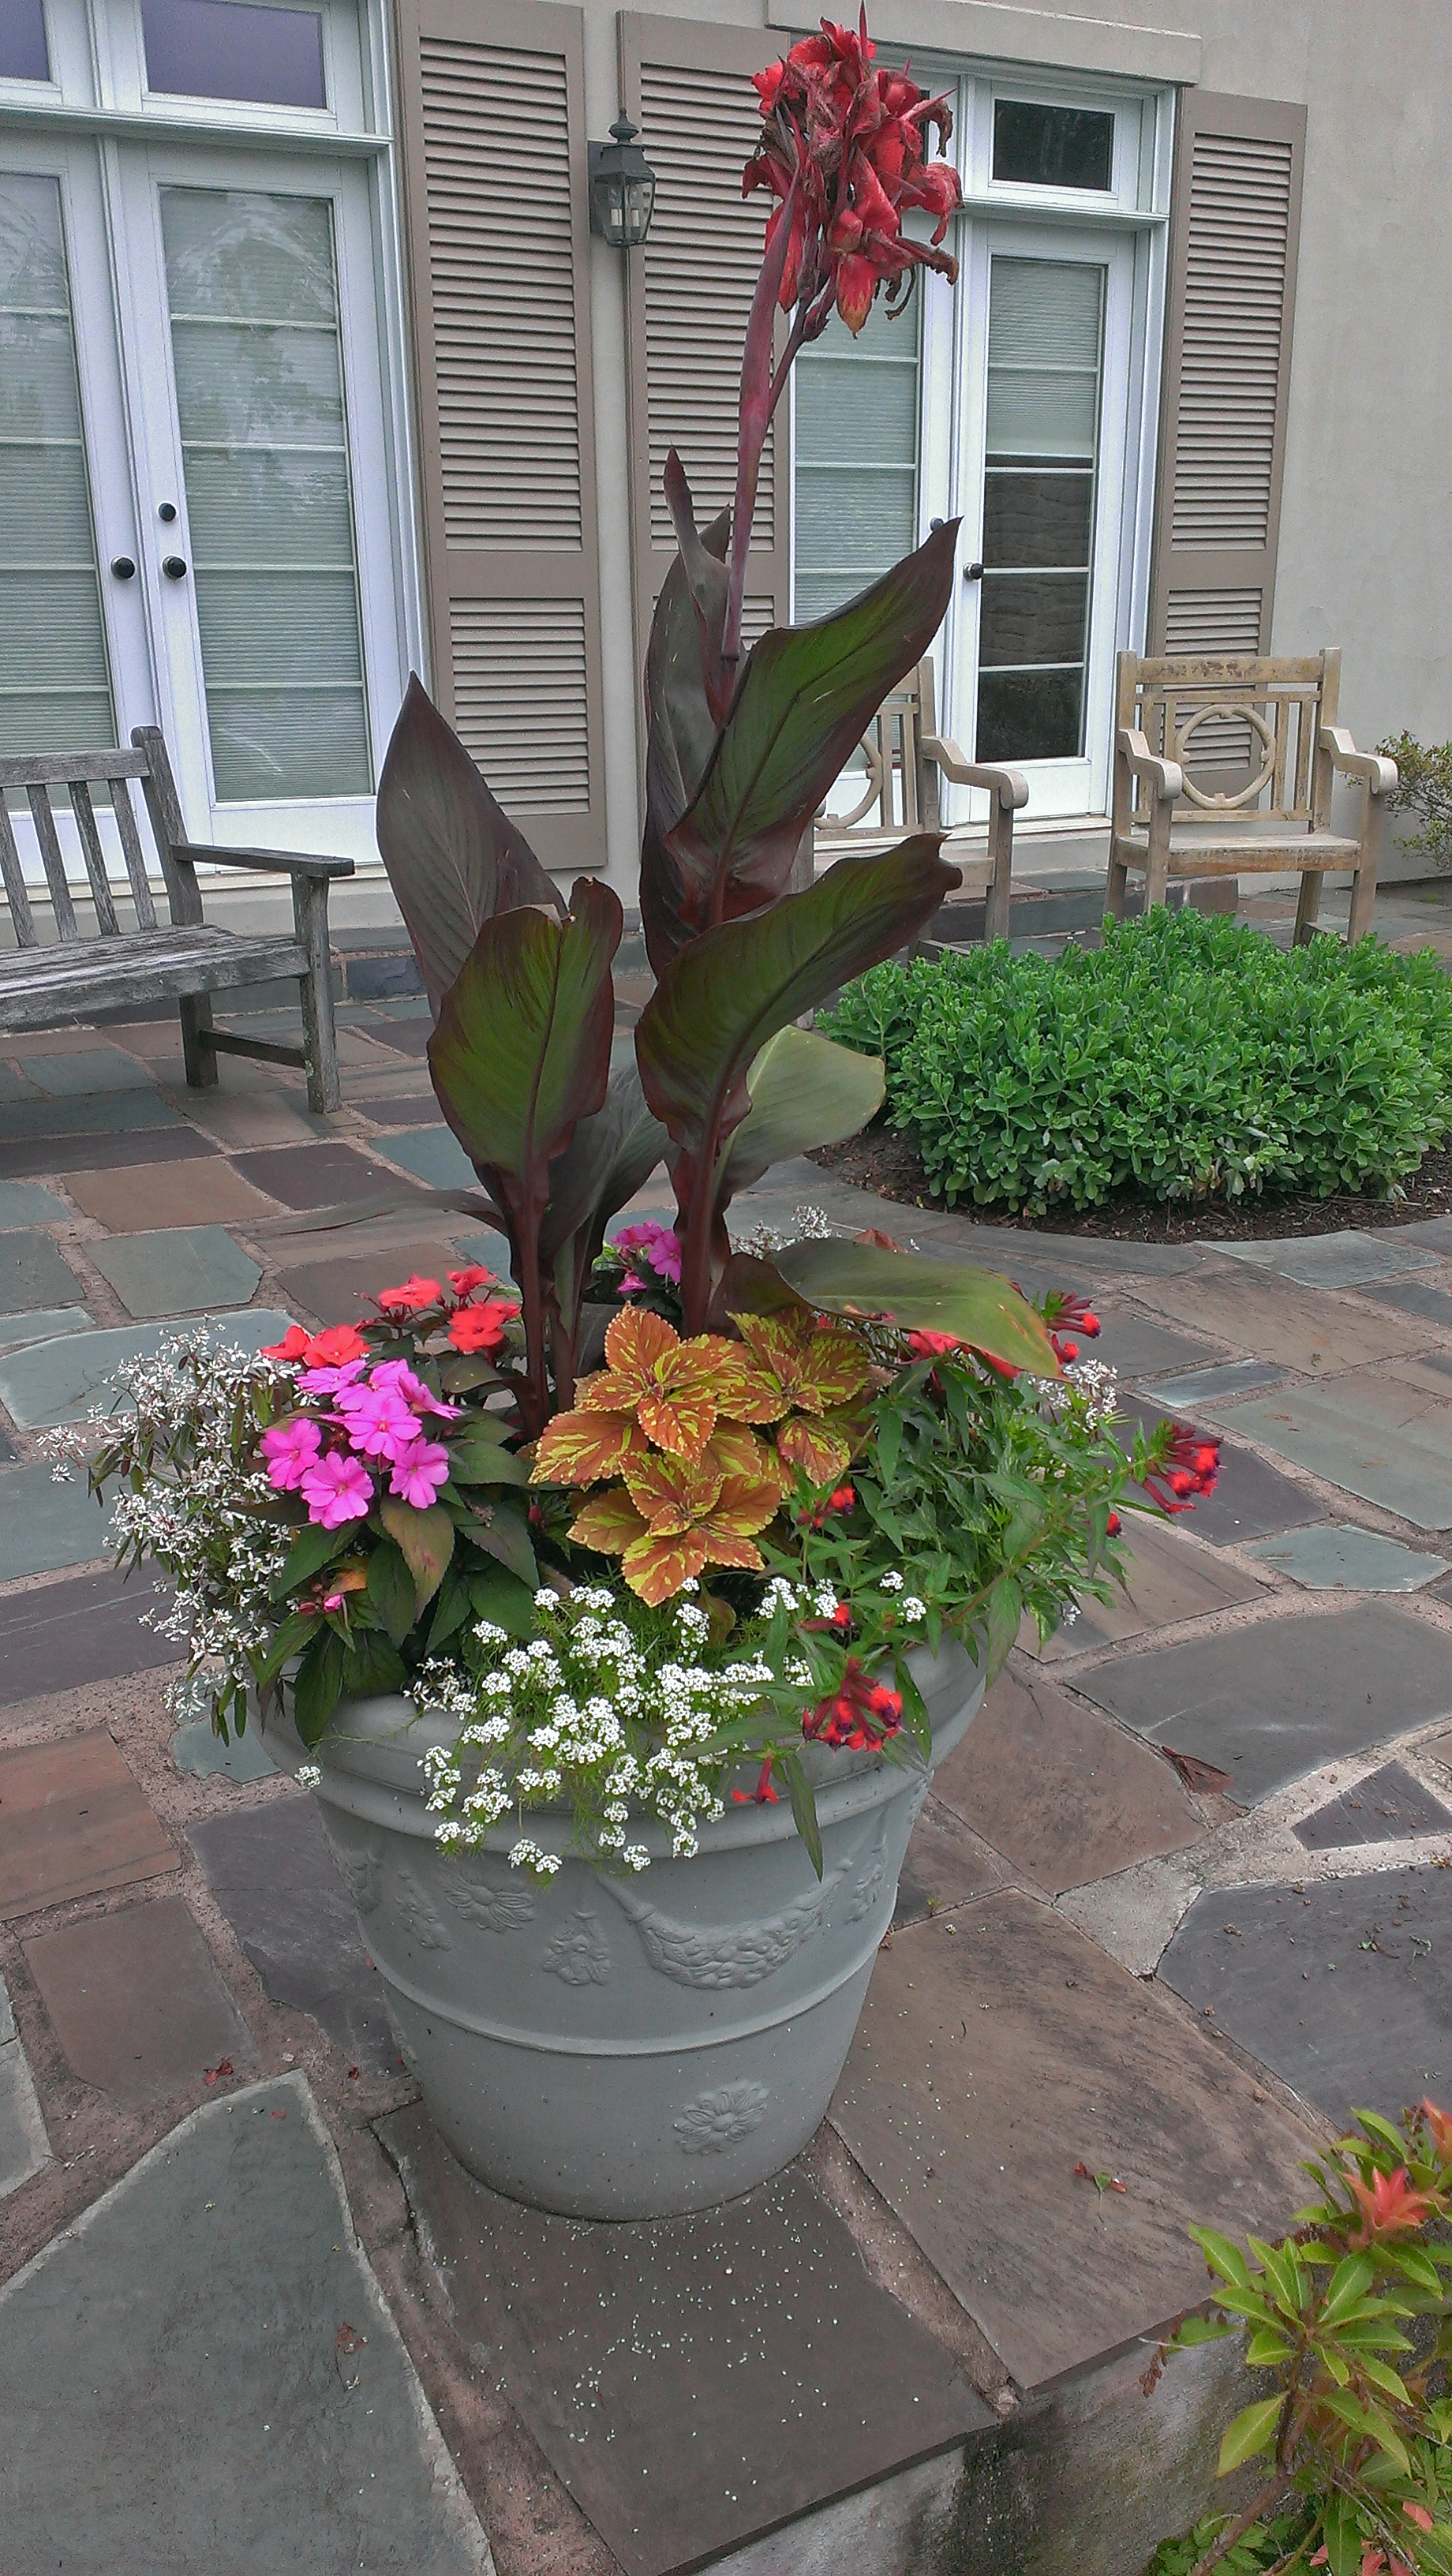 One common form of container design consists of an accent plant surrounded by smaller, less dramatic vegetation.